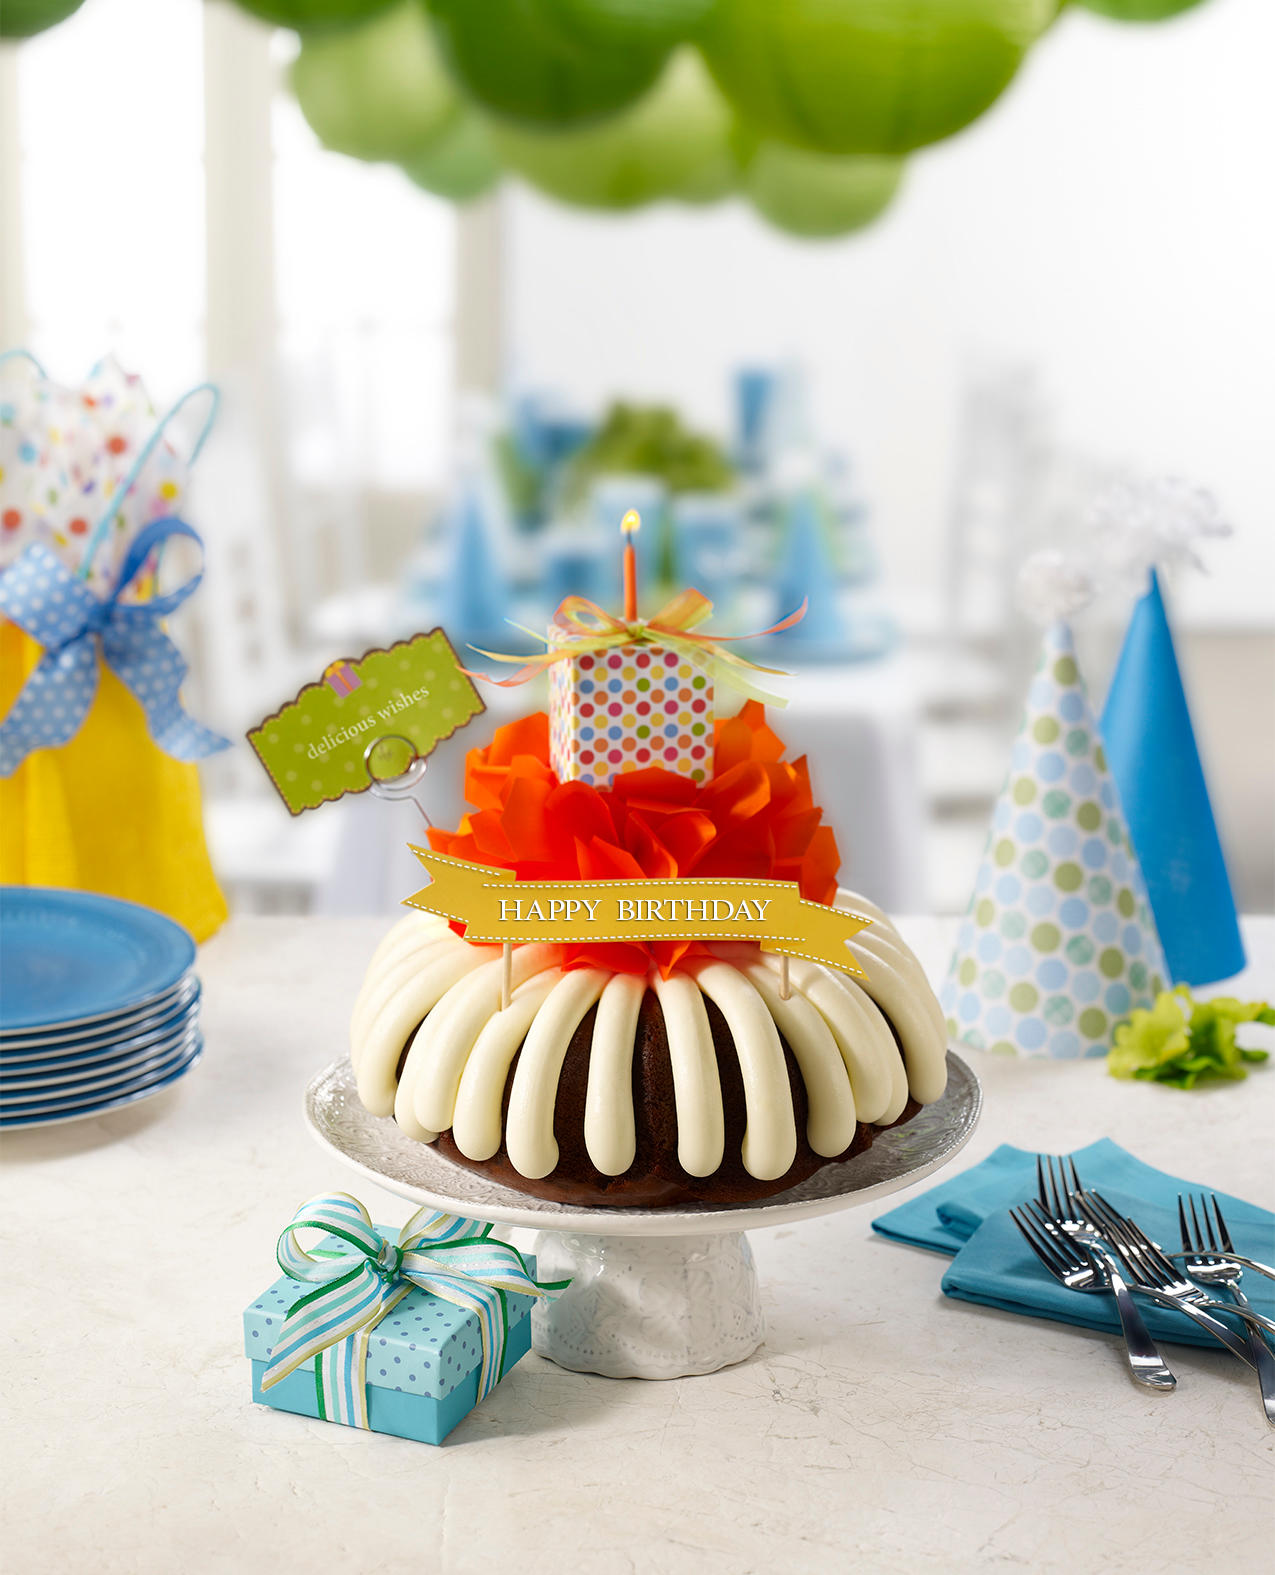 Swell Nothing Bundt Cakes 7155 S Rainbow Blvd Ste 120 Las Vegas Nv Funny Birthday Cards Online Aeocydamsfinfo